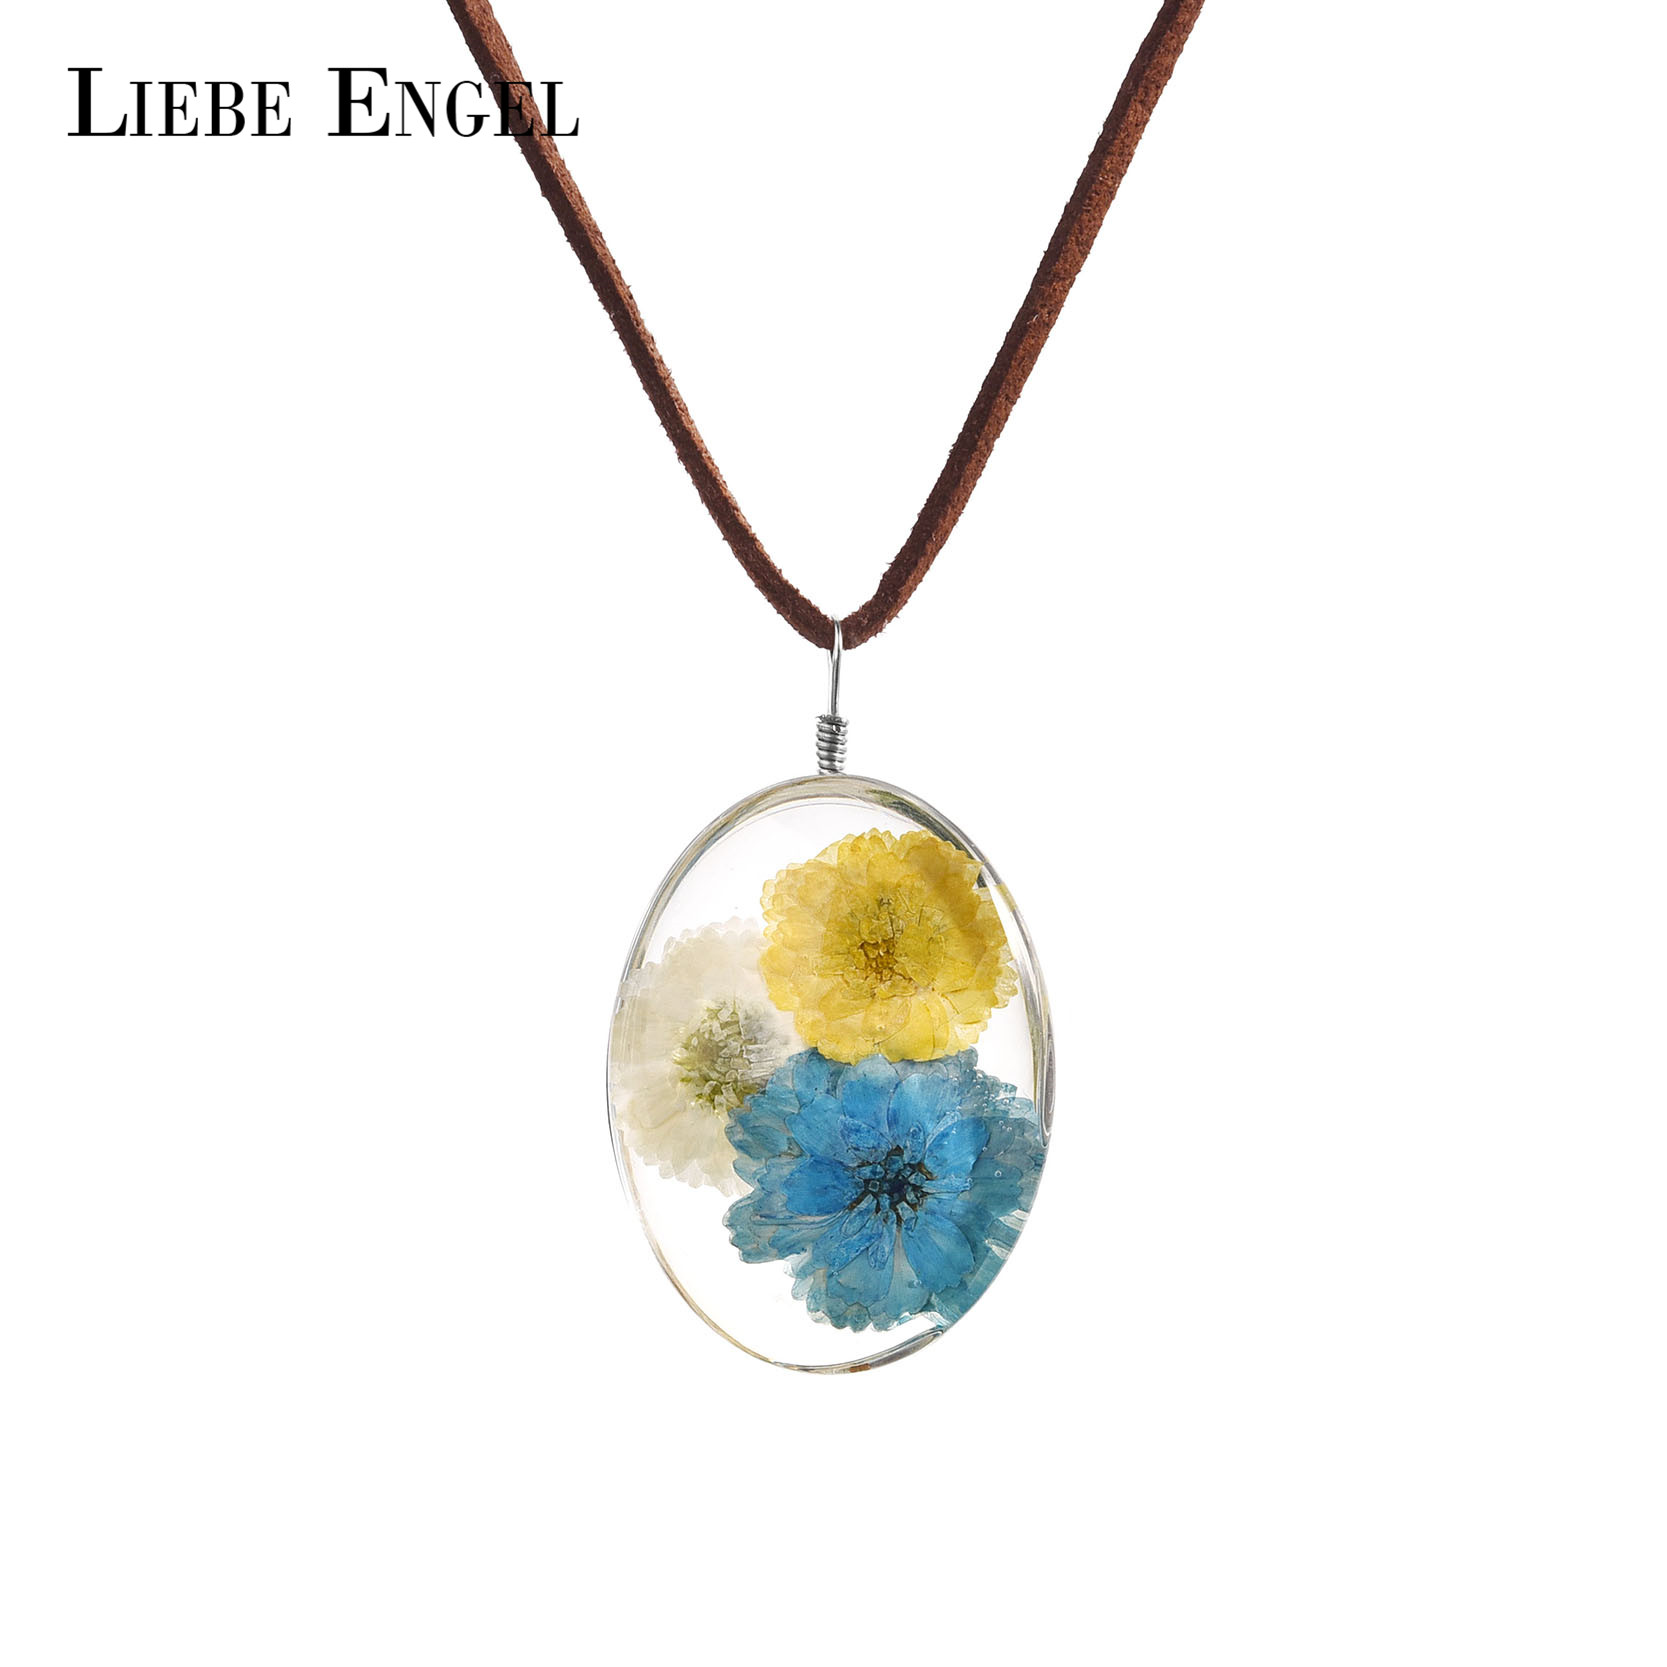 Liebe engel real hibiscus dried flower glass pendant necklace liebe engel real hibiscus dried flower glass pendant necklace sweater chain long statement necklace for women rope chain 2018 in pendant necklaces from izmirmasajfo